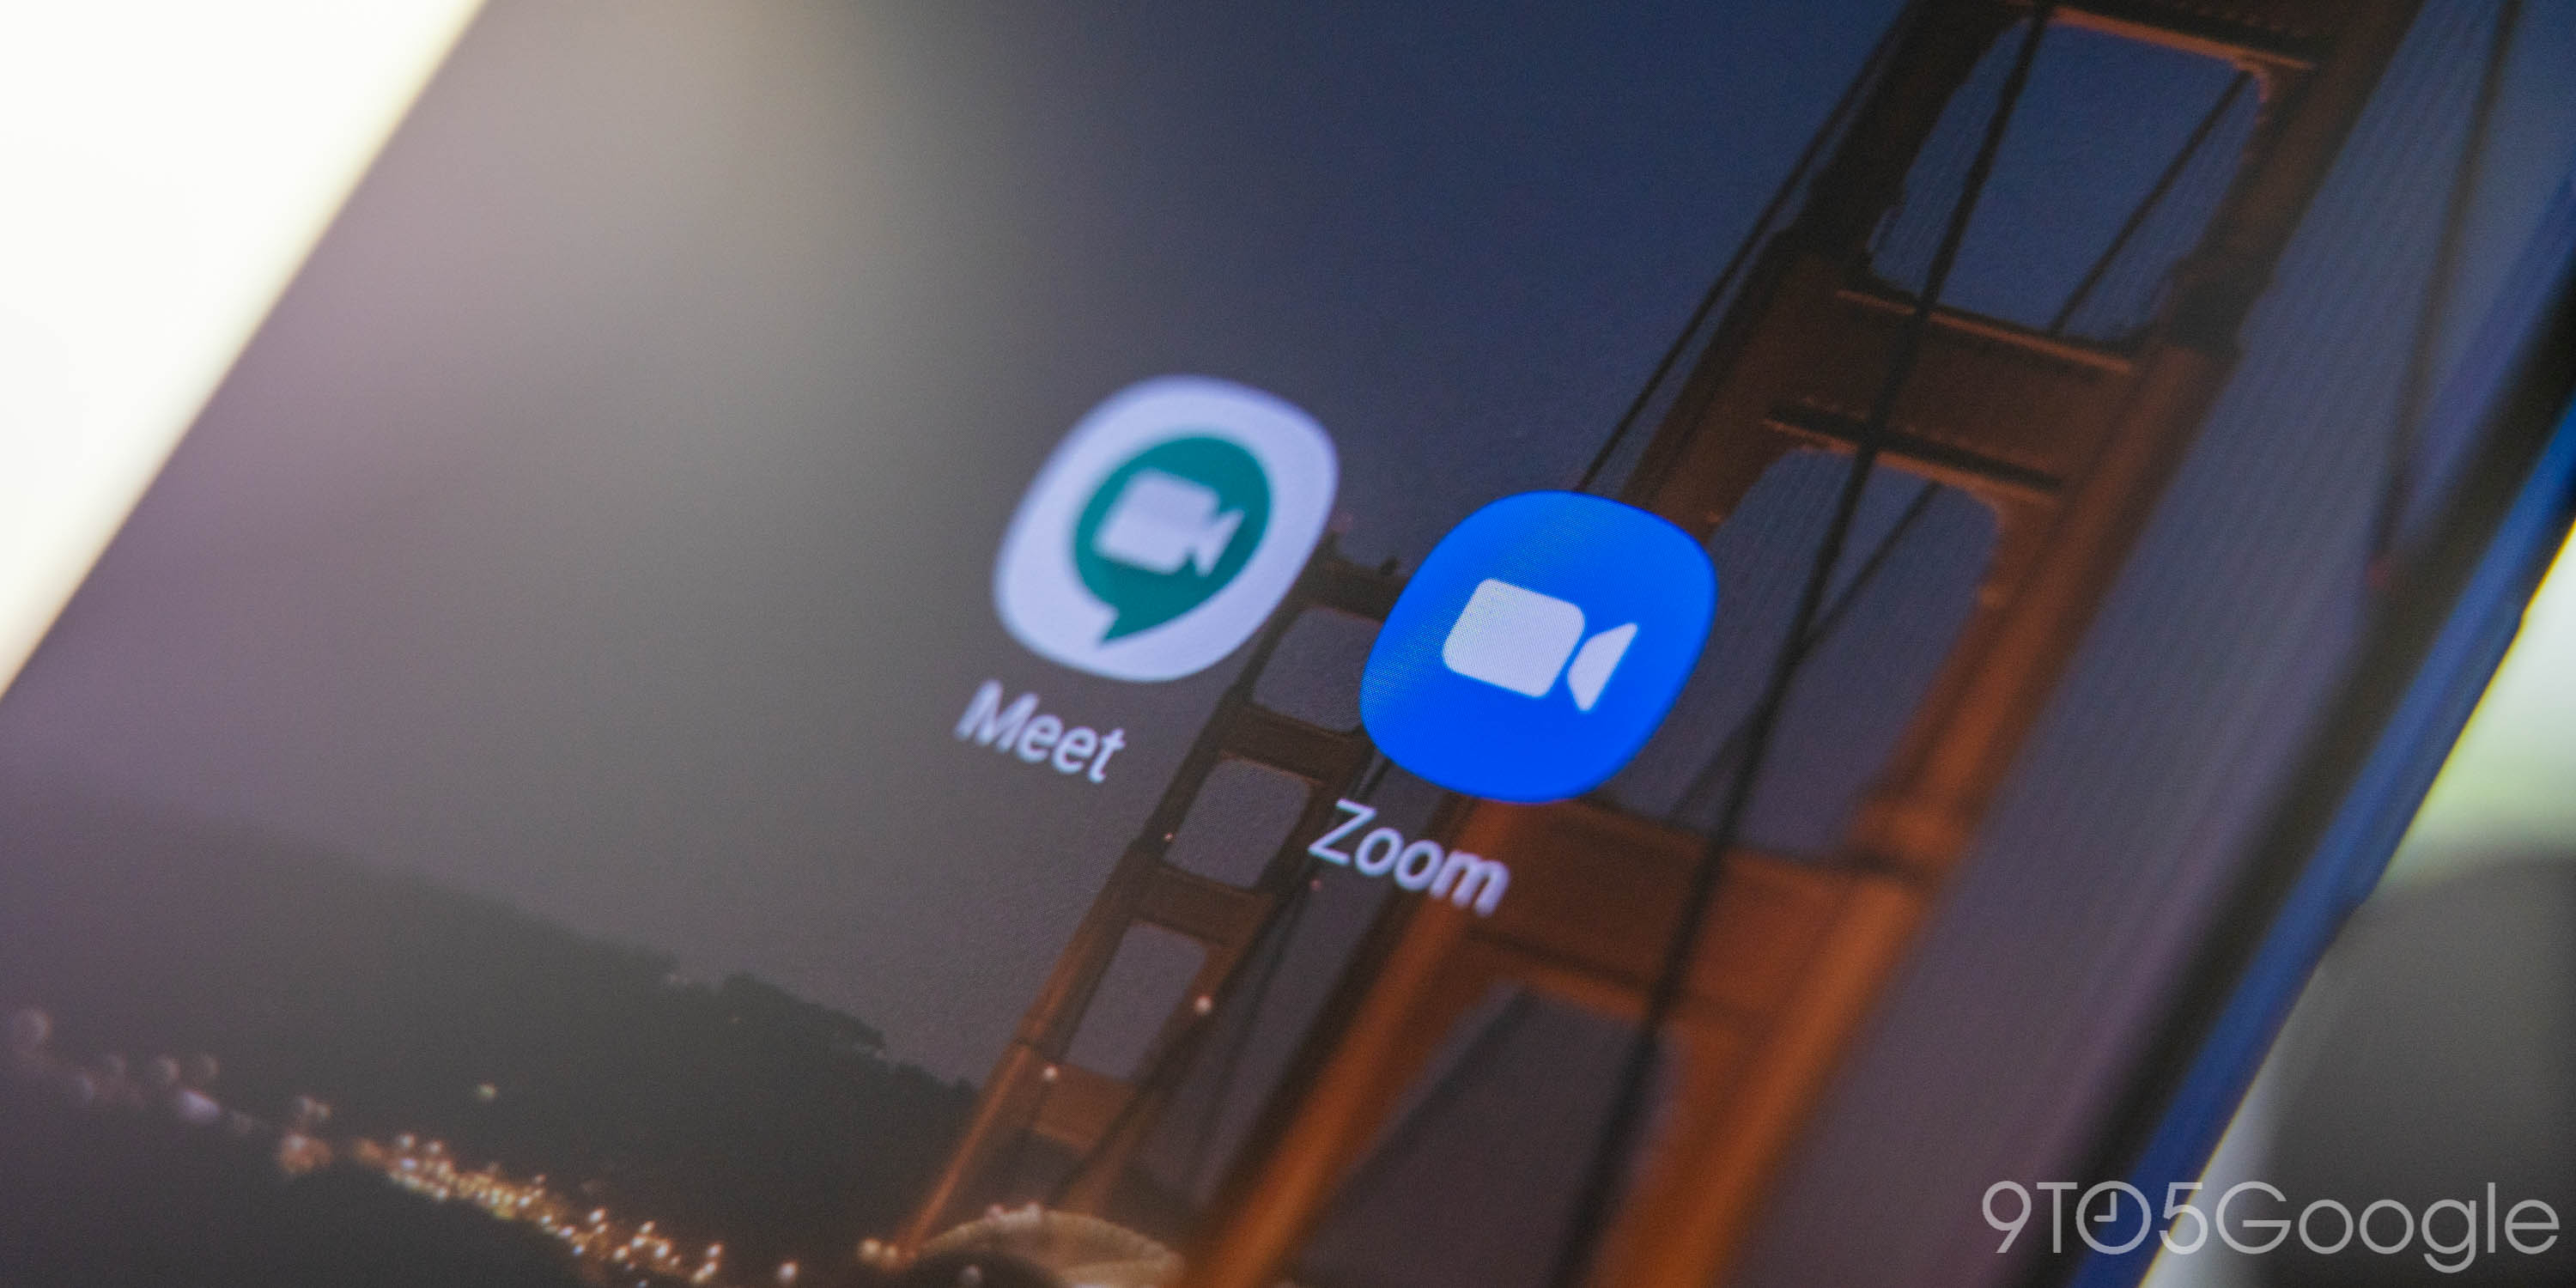 Google Meet Needs To Copy One Zoom Feature W Free Tier 9to5google